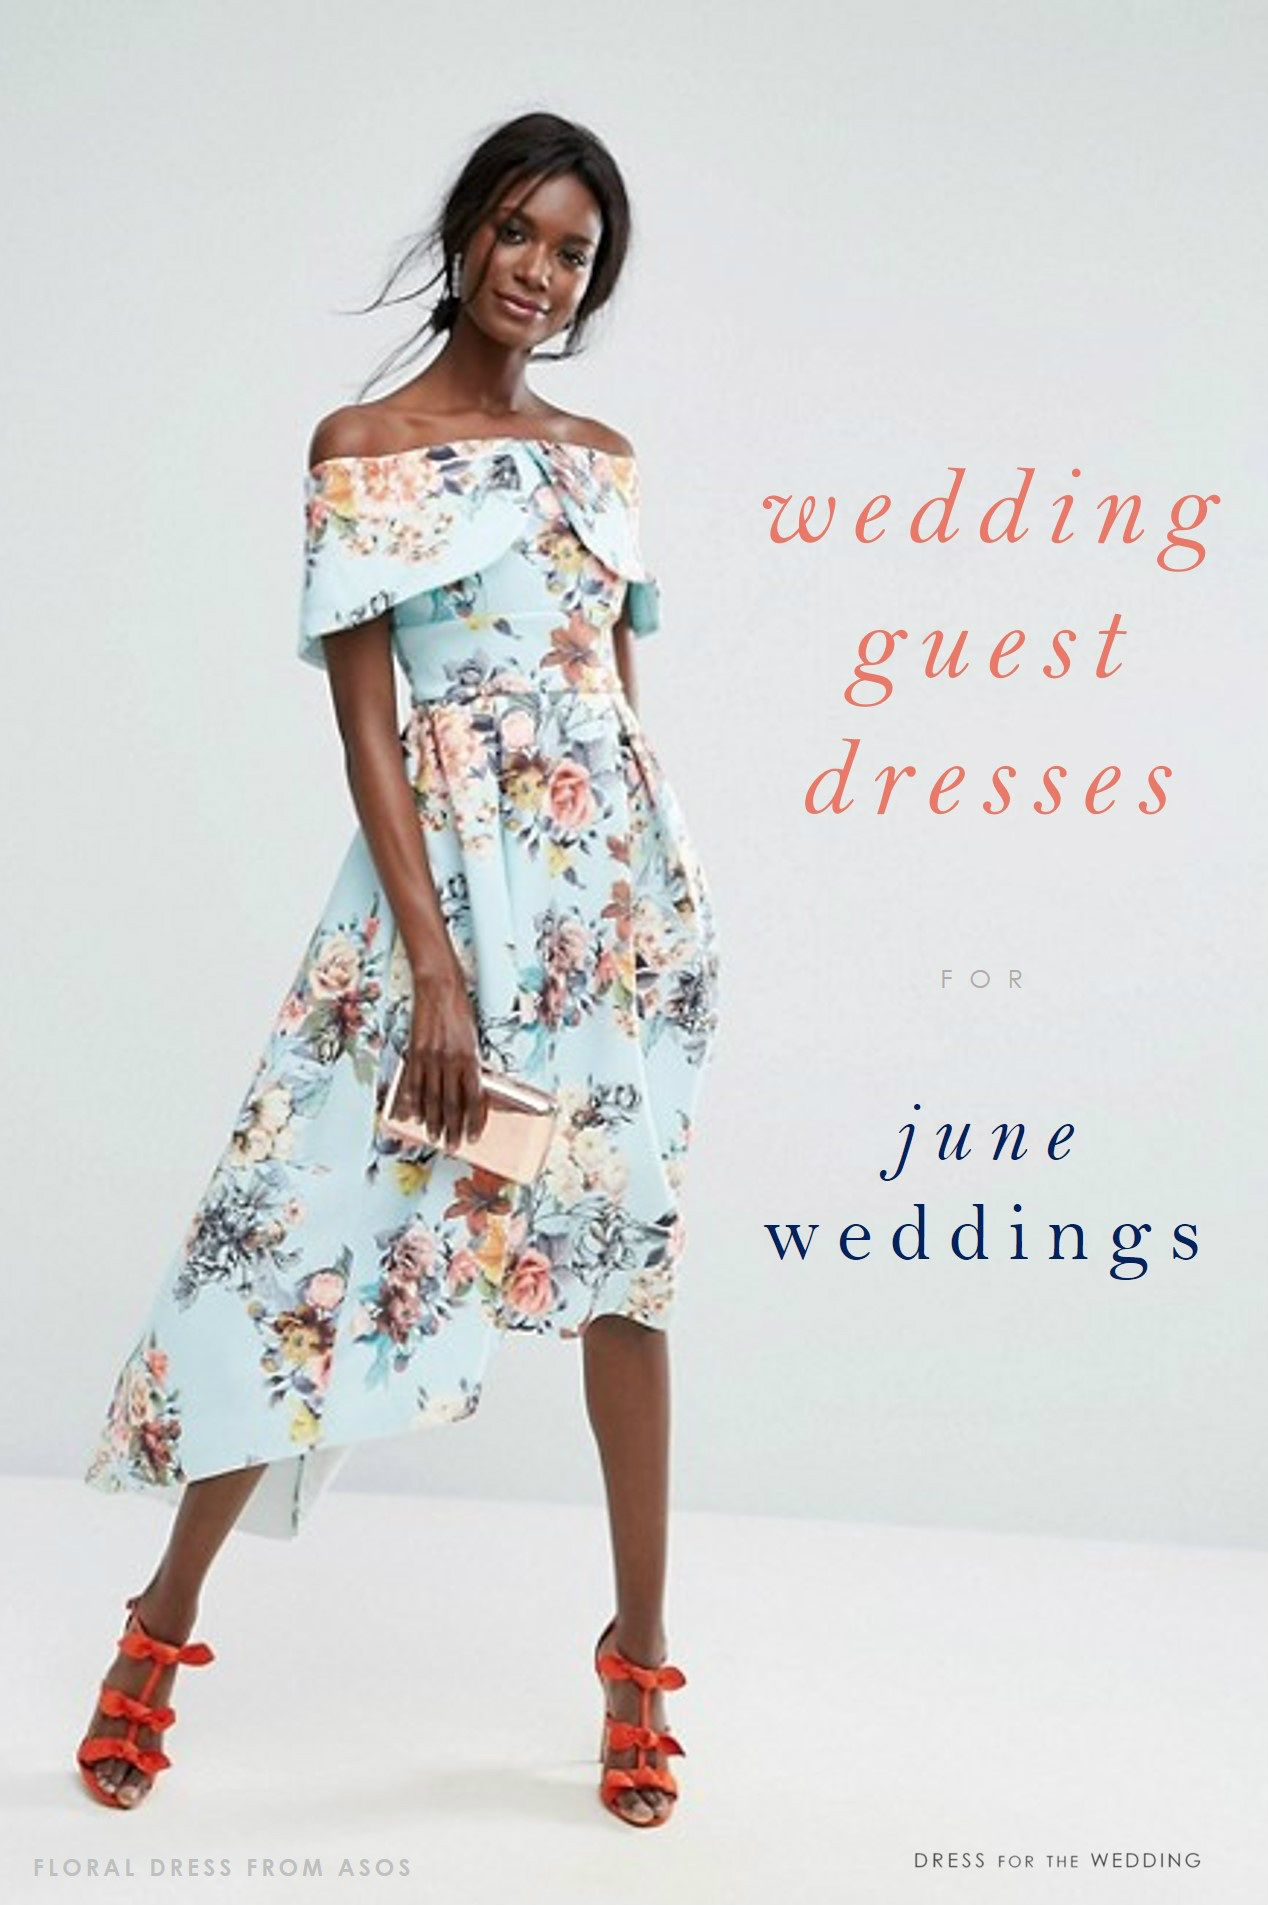 88856af9f950a Tons of ideas for wedding guest dresses for June 2017 weddings, including  tips on what to wear to June weddings ordered by each type of wedding dress  code!